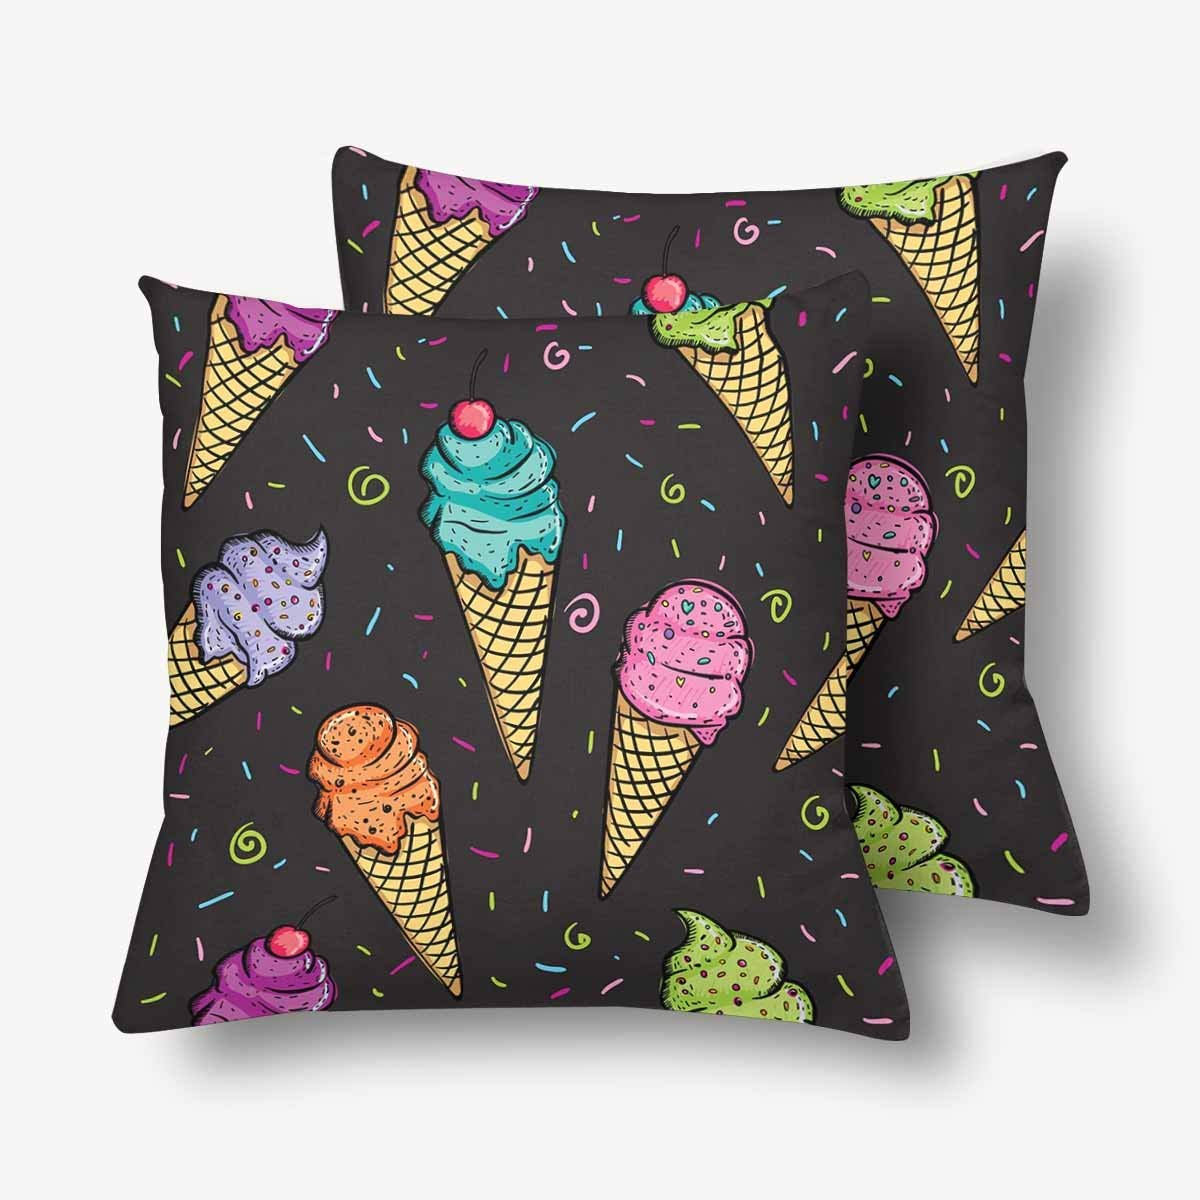 GCKG Abstract Seamless Pattern Colorful Ice Cream Throw Pillow Covers 18x18 inches Set of 2 - image 3 of 3